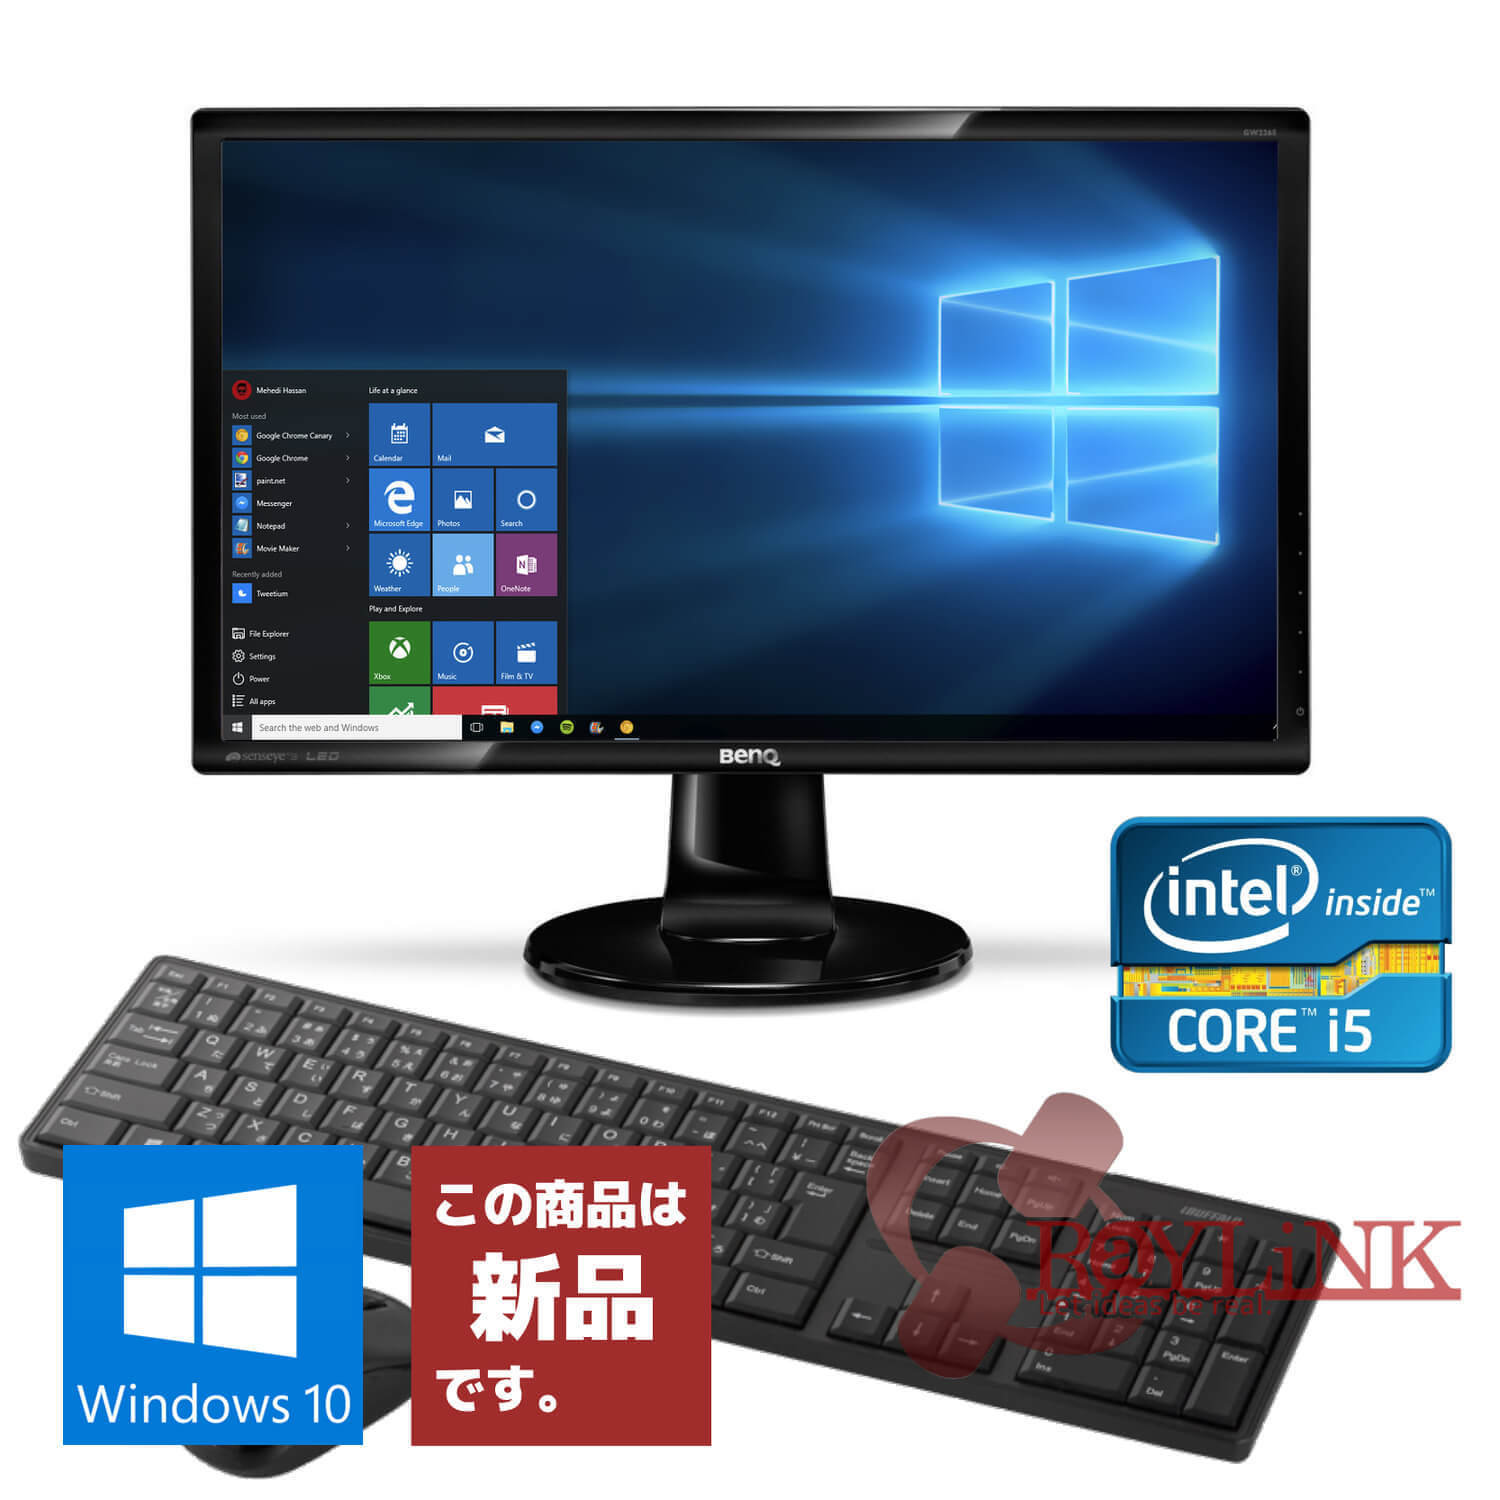 【新品】RayLink / モニター21.5インチ / Windows10 Home(64bit) / HDD500GB / 4GB / Core i5